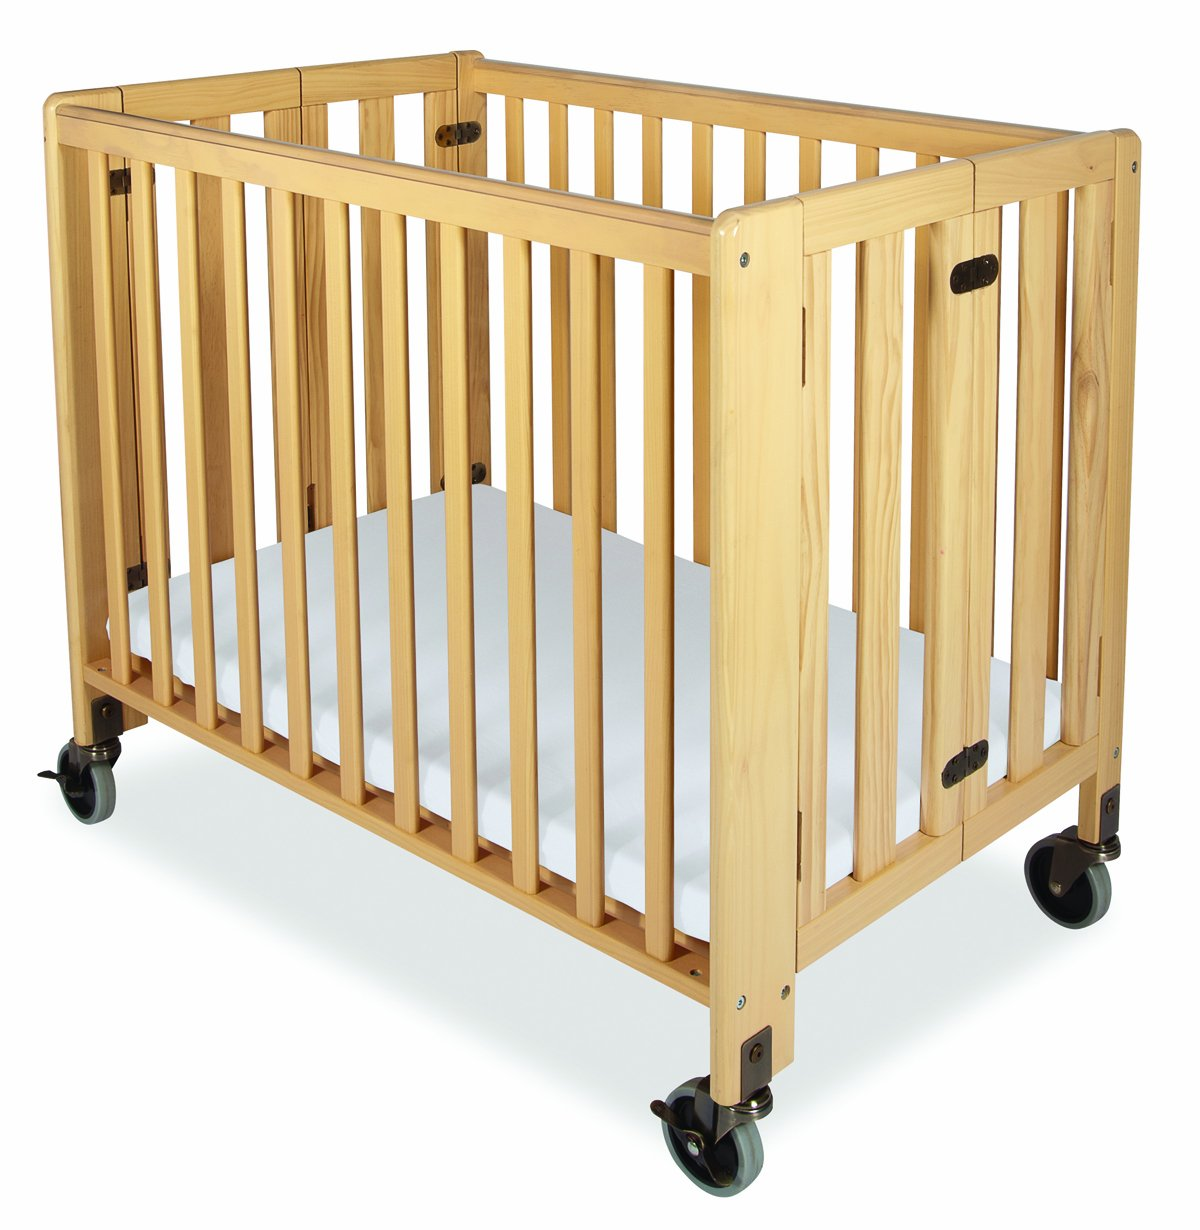 Amazon.com : Foundations Hideaway Full Sized Folding Crib, Natural : Portable  Crib : Baby